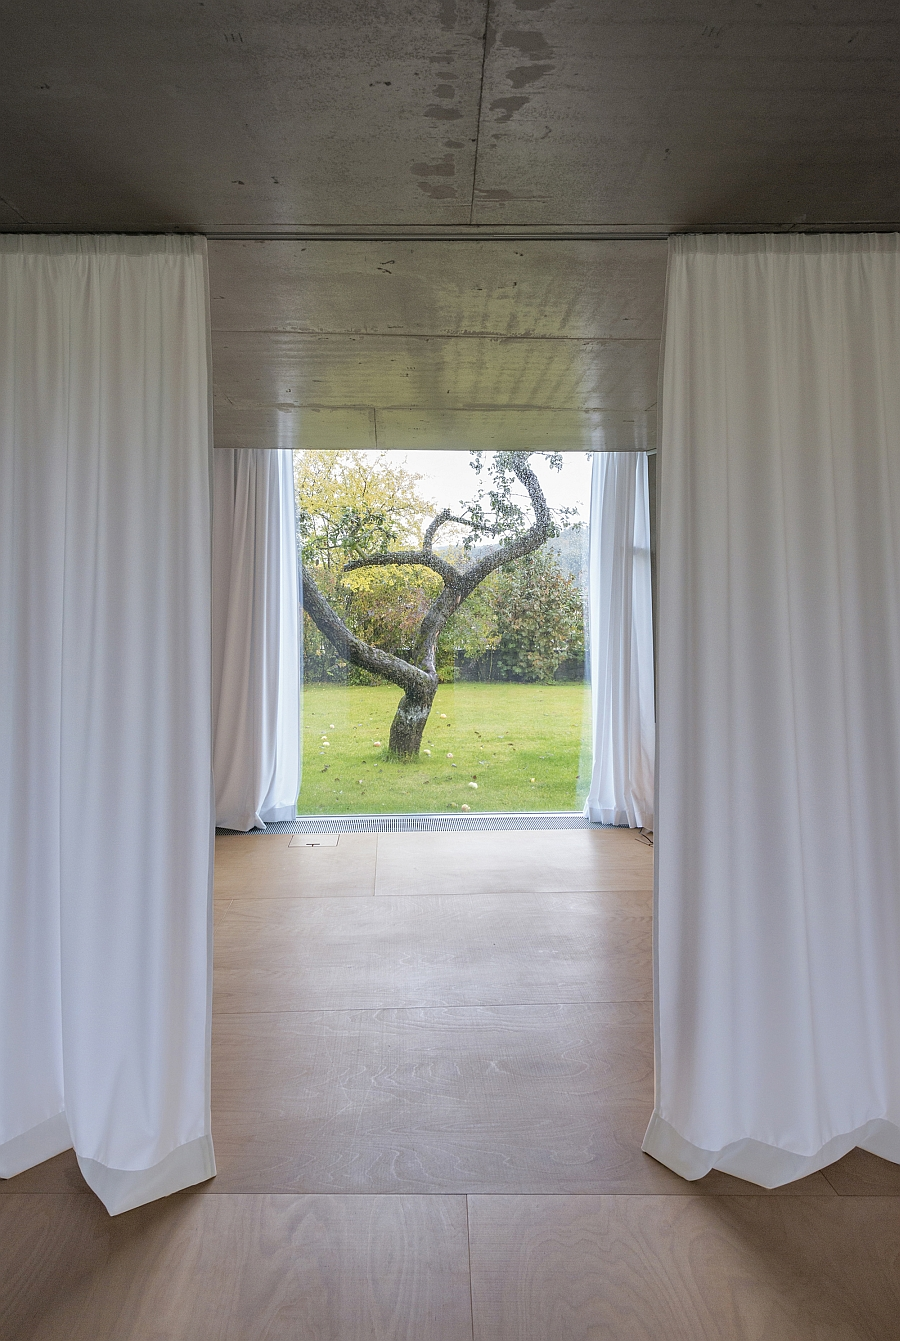 Track-mounted curtains allow you to shift between privacy and unabated views